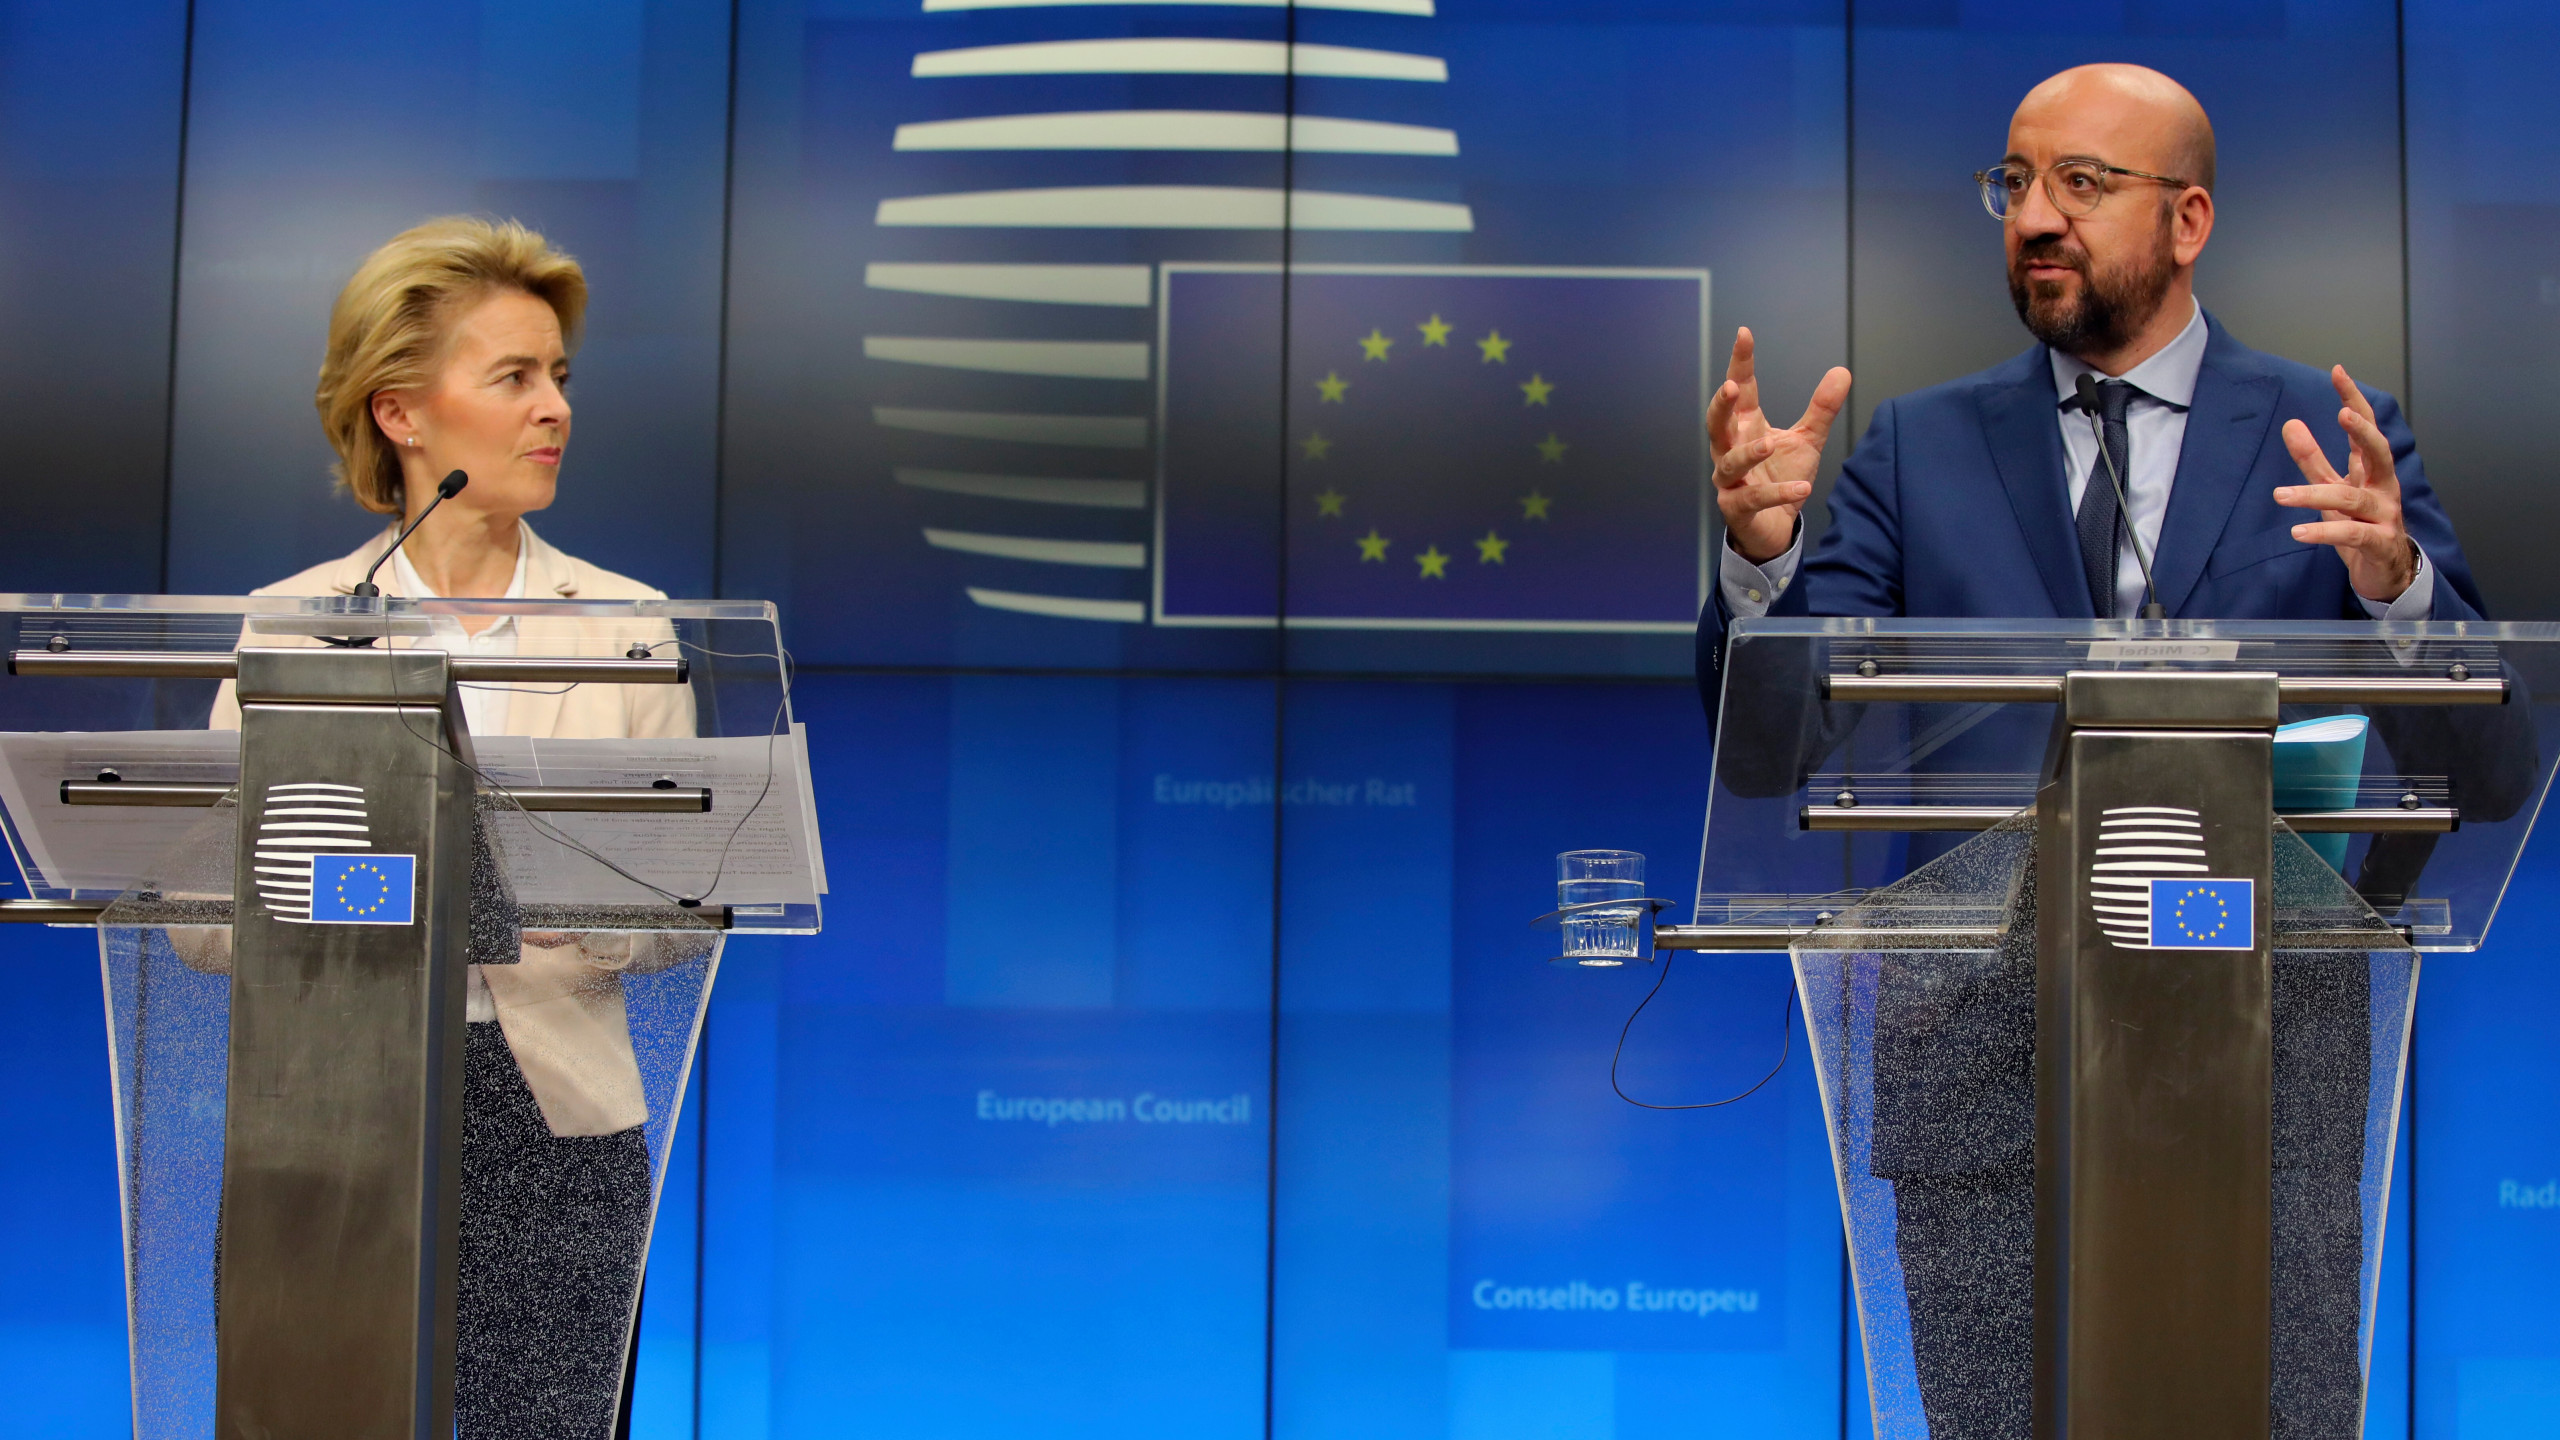 EU will Close its Borders to All Nonessential Travel to Fight Coronavirus |  أنصار الله